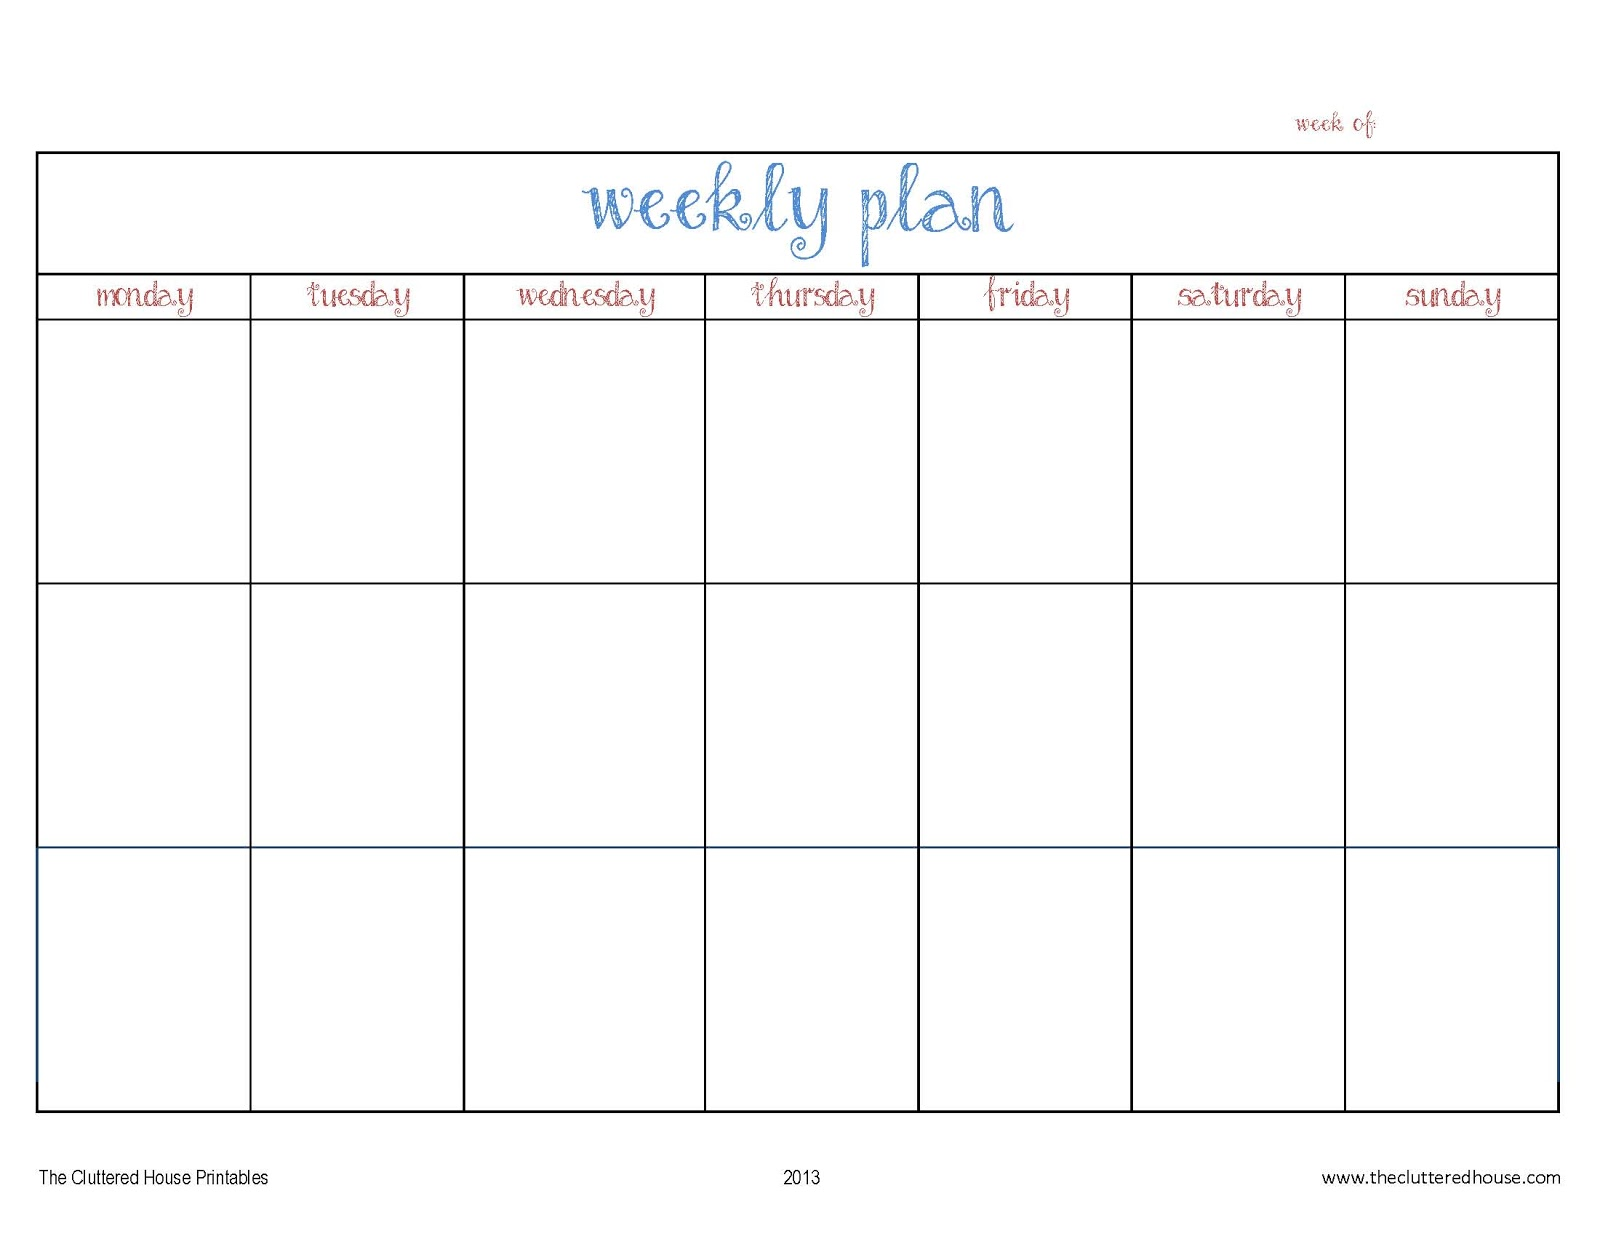 image relating to Weekly Planner Print Out referred to as The Cluttered Place: Weekly Planner Printable